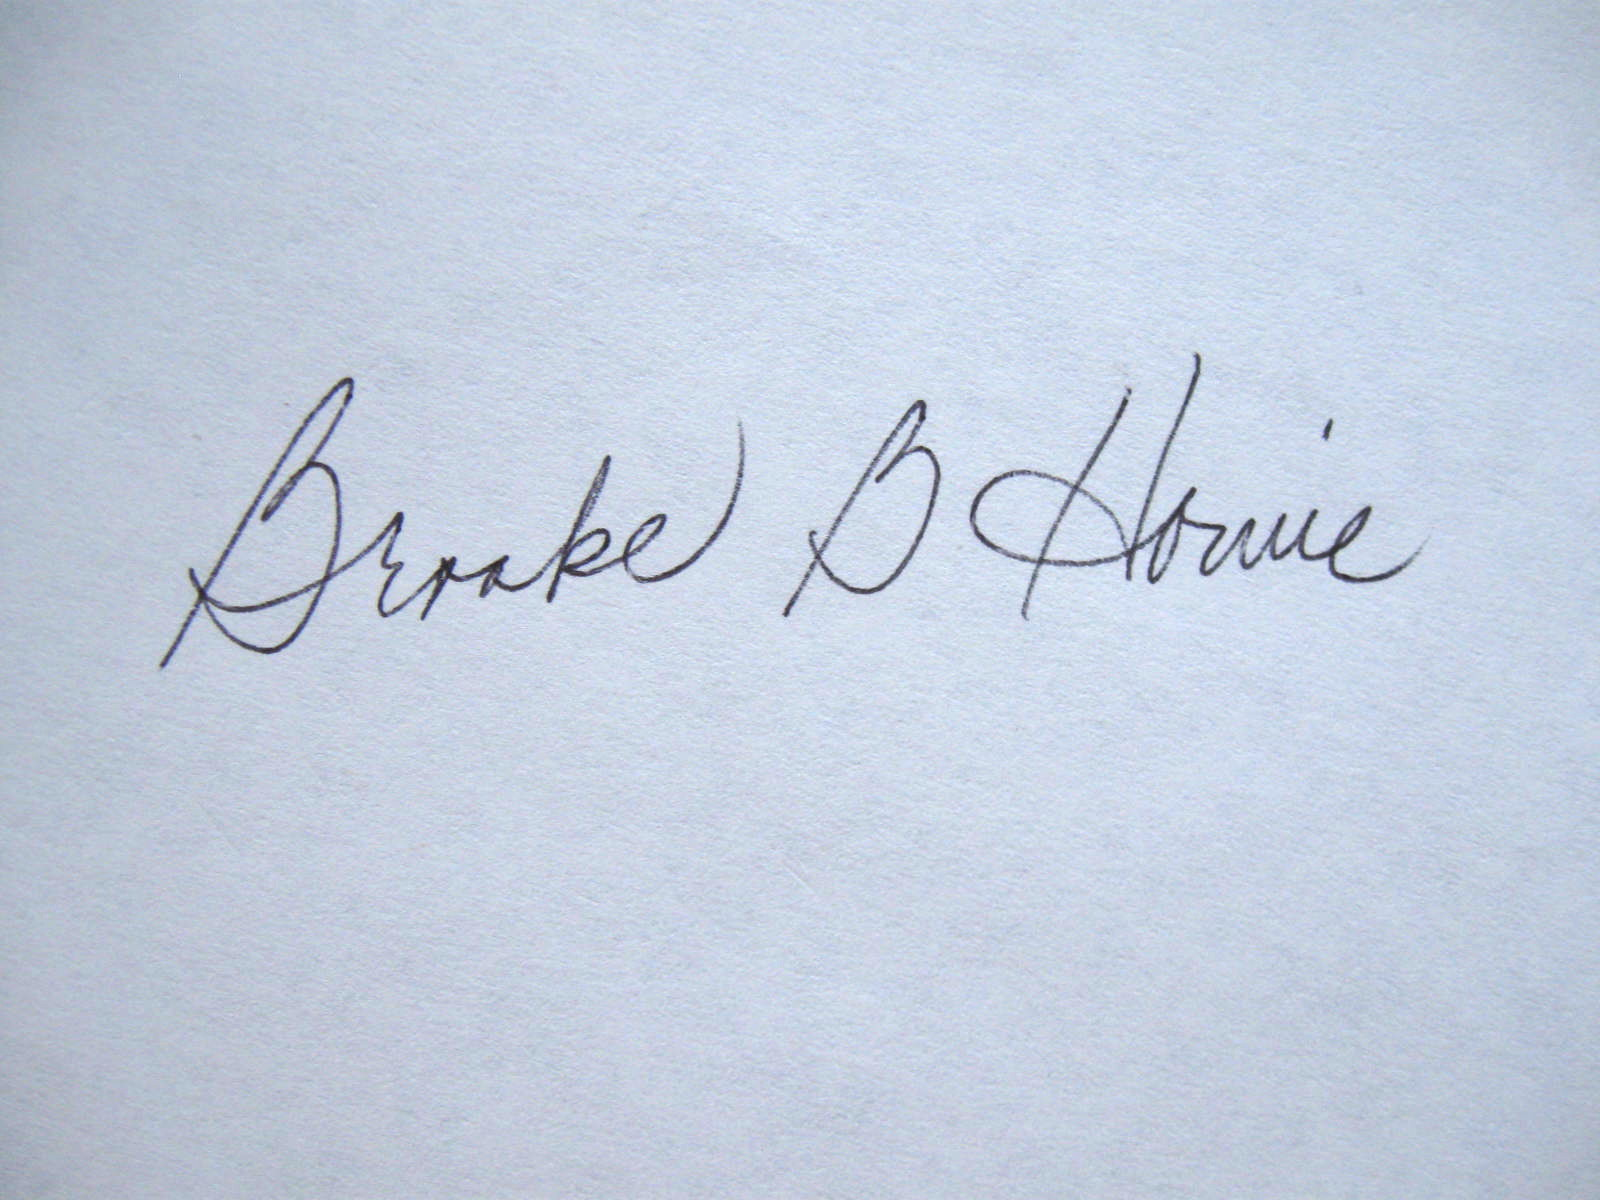 Brooke Howie's Signature